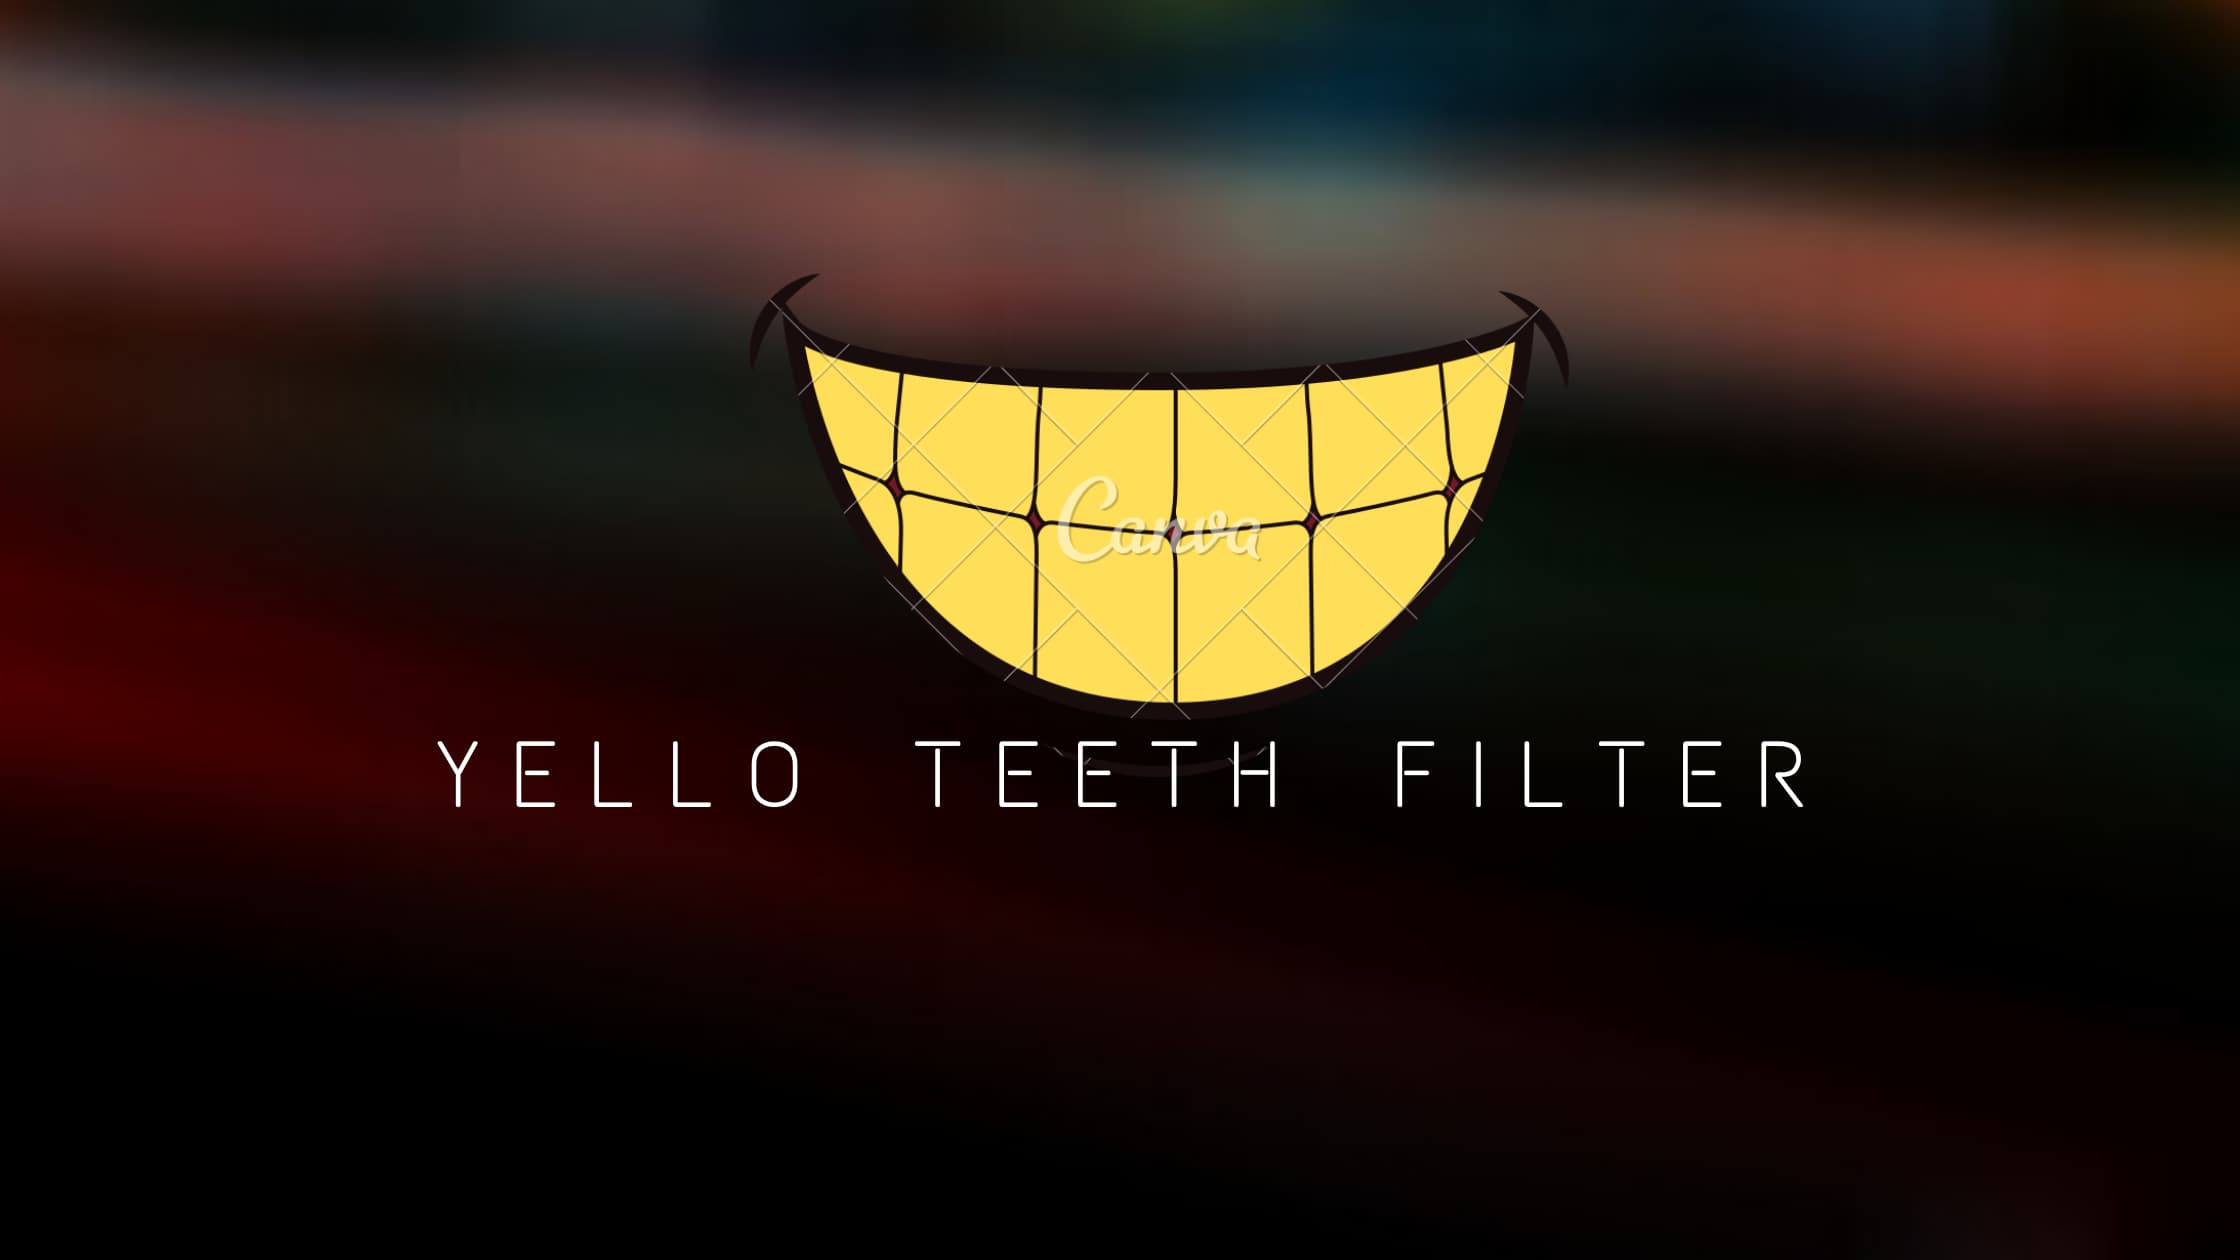 YELLOW TEETH FILTER